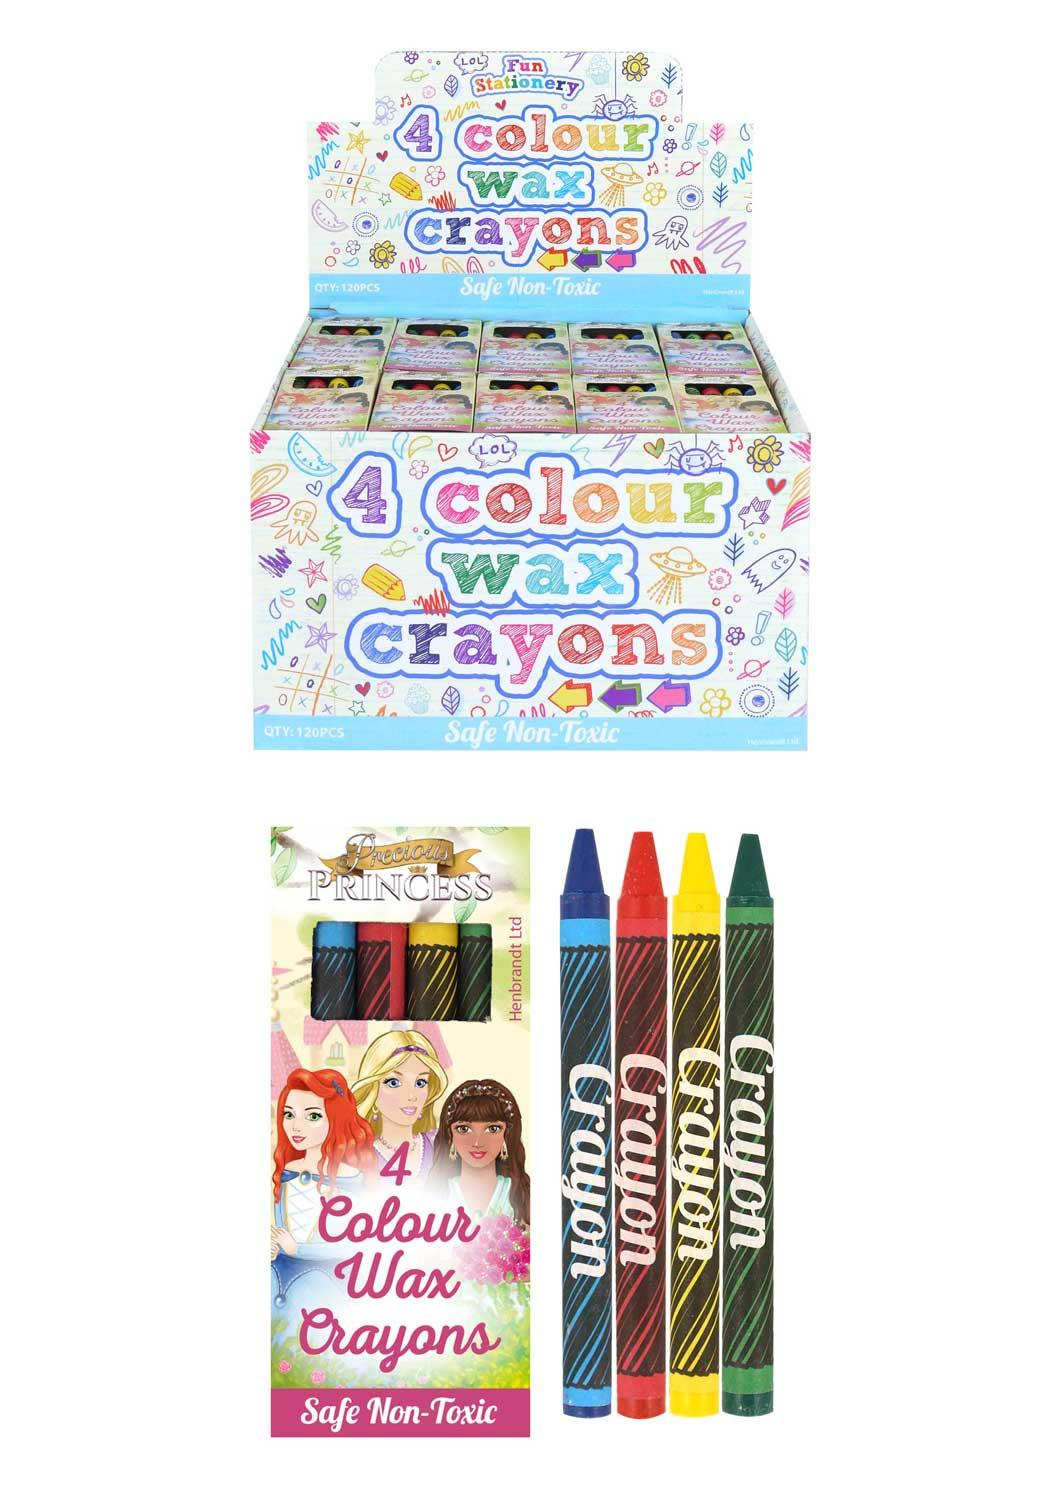 120 Packs of 4 Colour Wax Crayons (Princess)